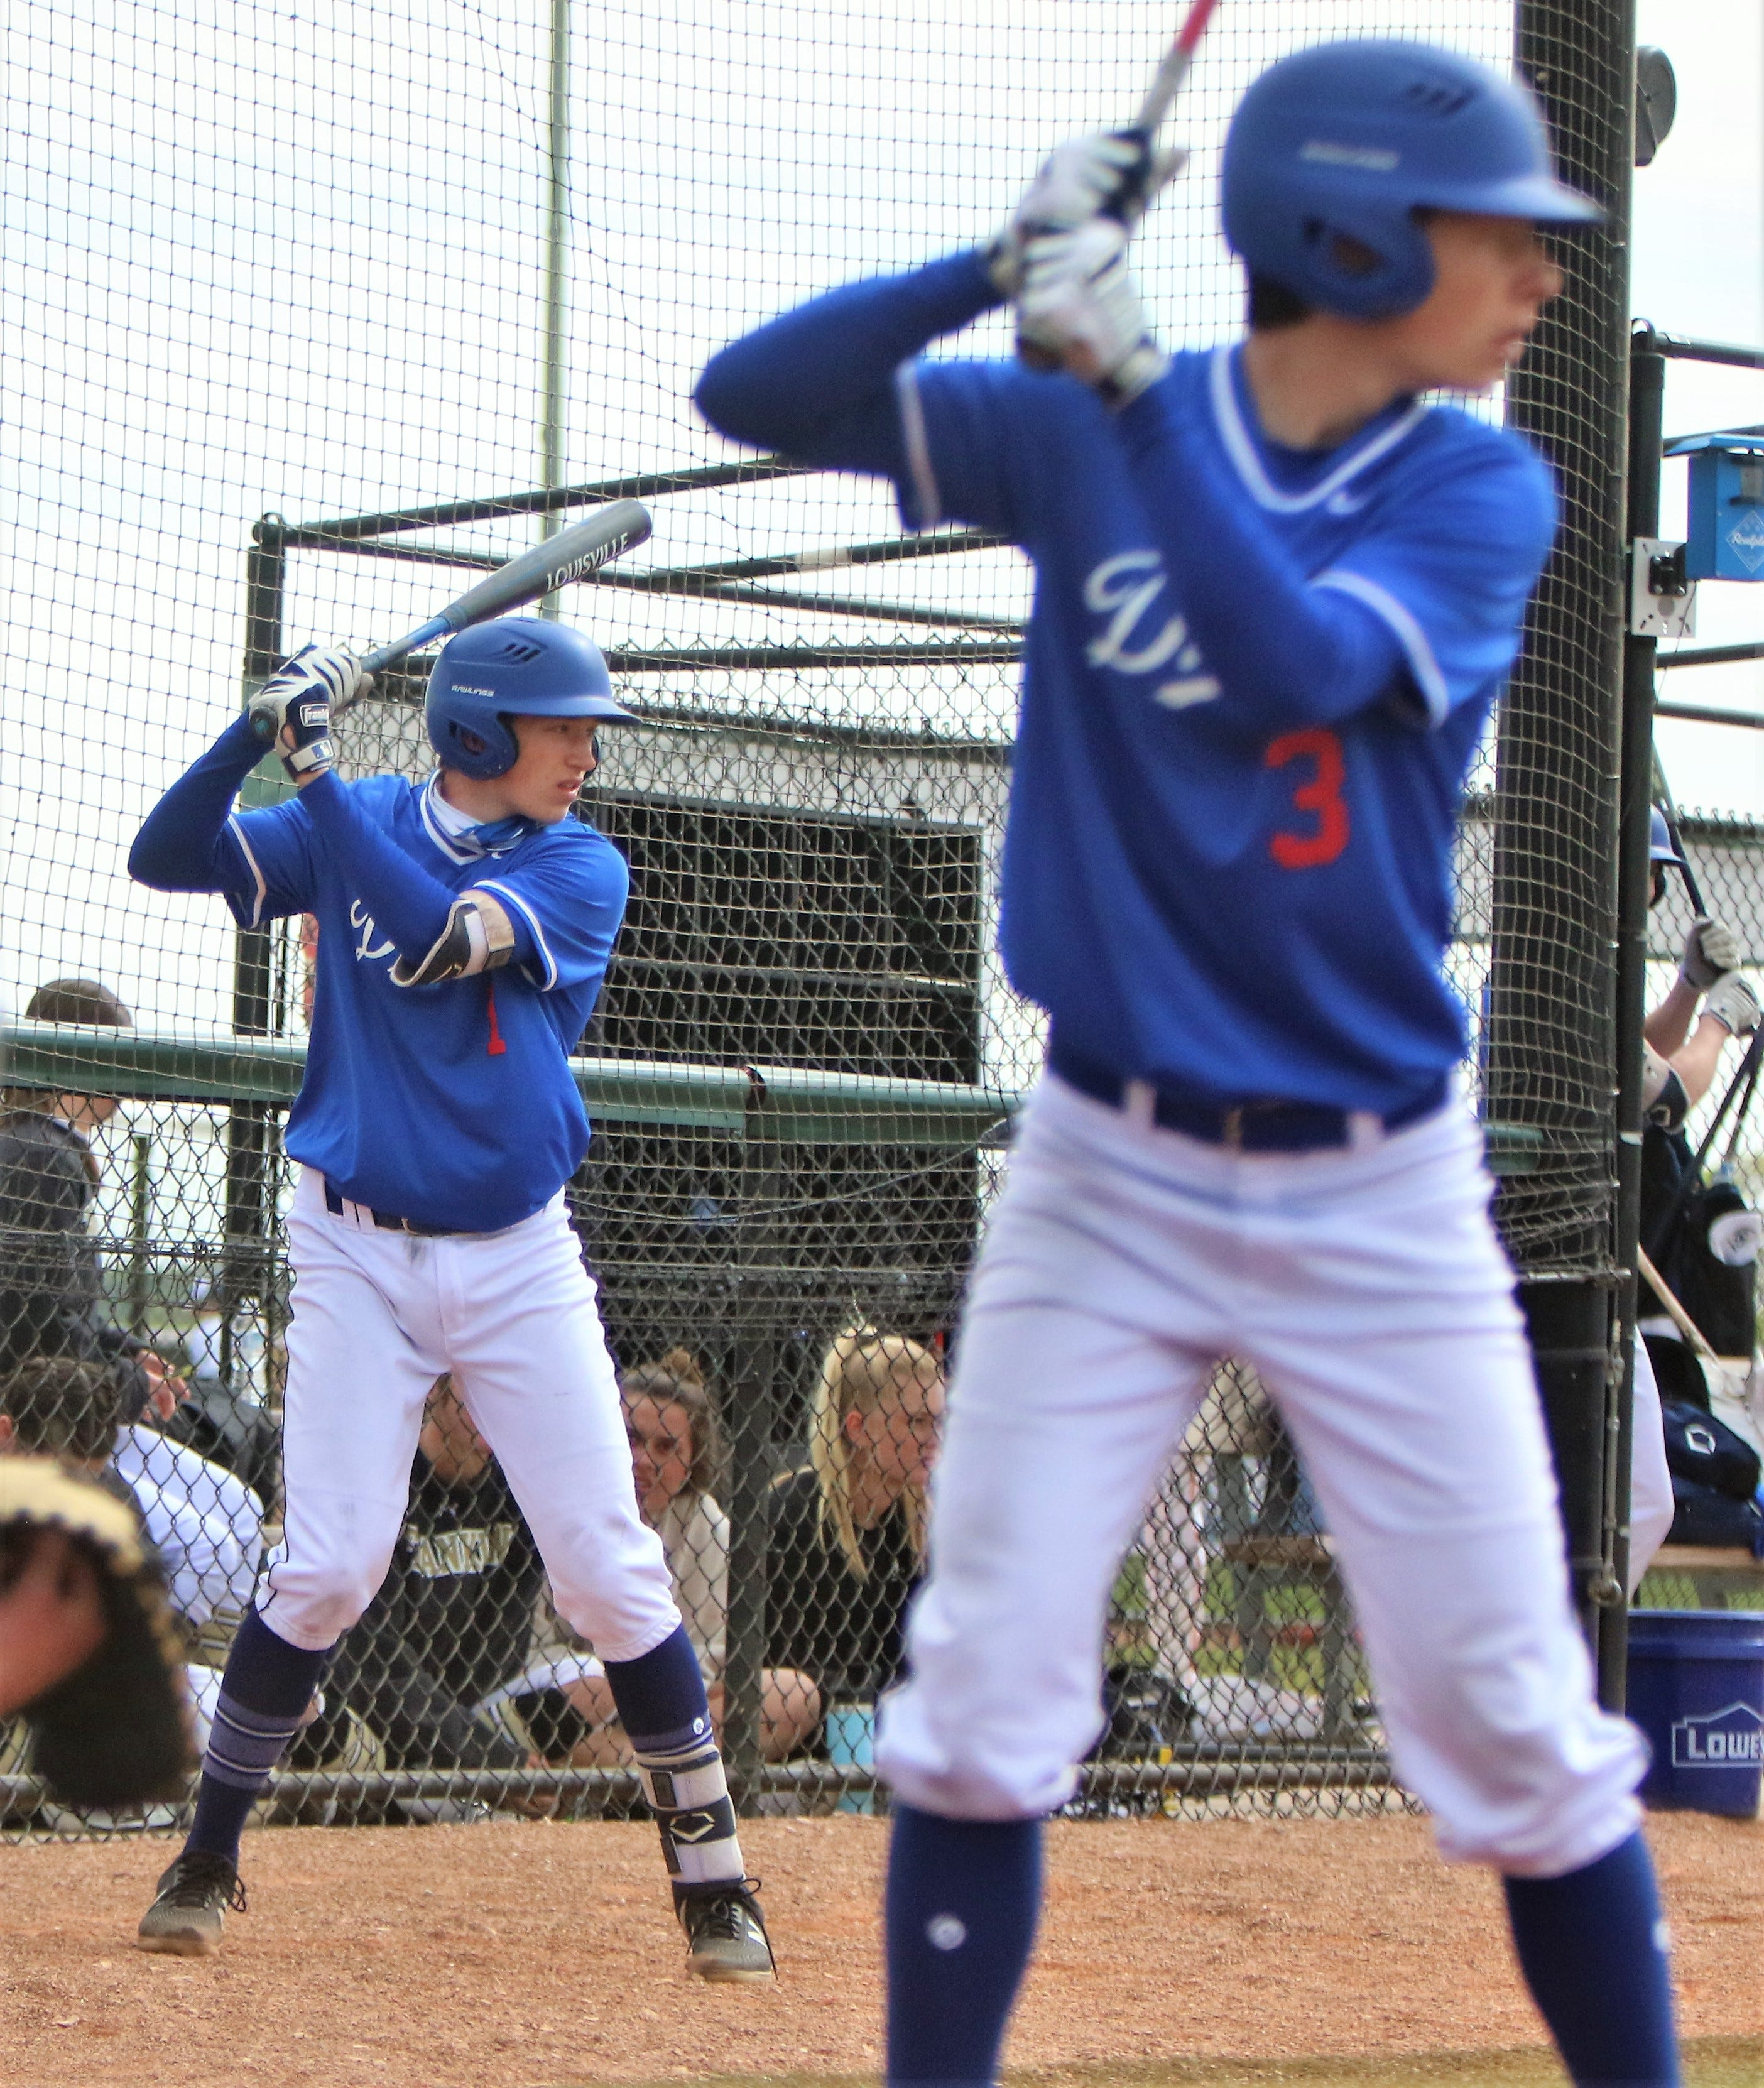 Just as their dad did, Brady and Jack Counsell are starring on same high school diamond